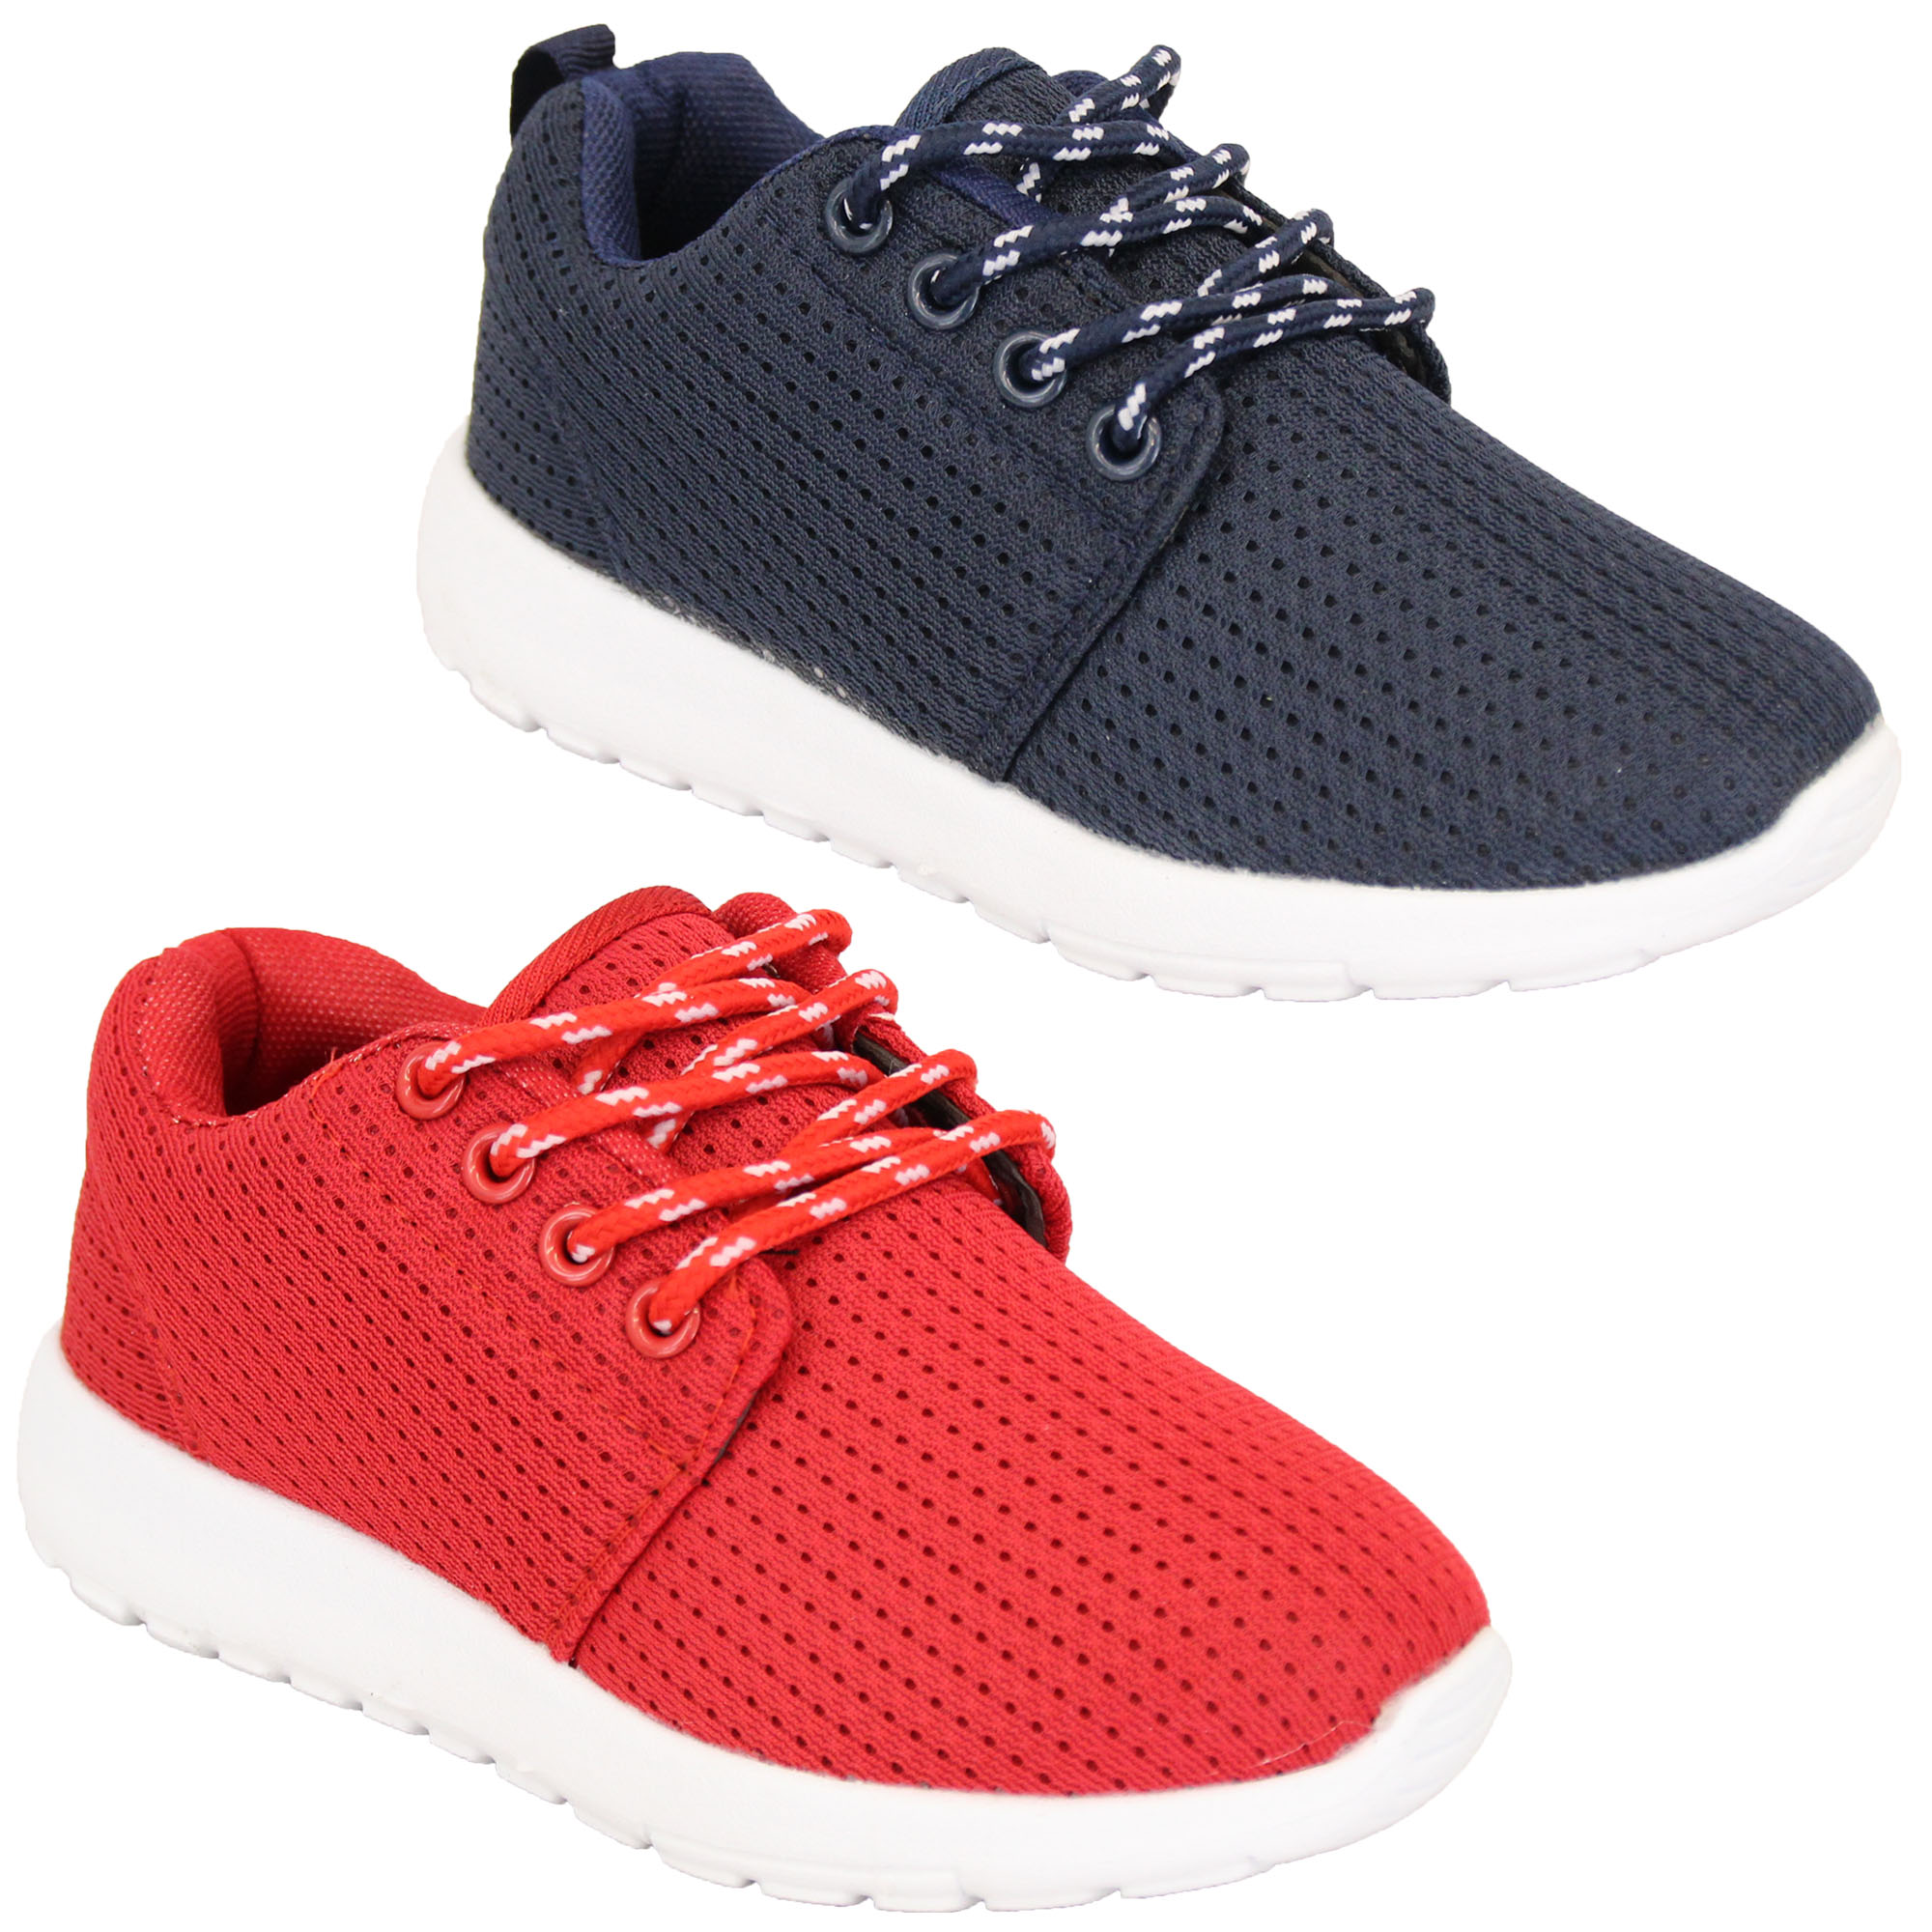 656535d137a8e Details about Boys Trainers Kids Lace Up Youth Running Toddlers Air Tech  Shoes Casual Fashion